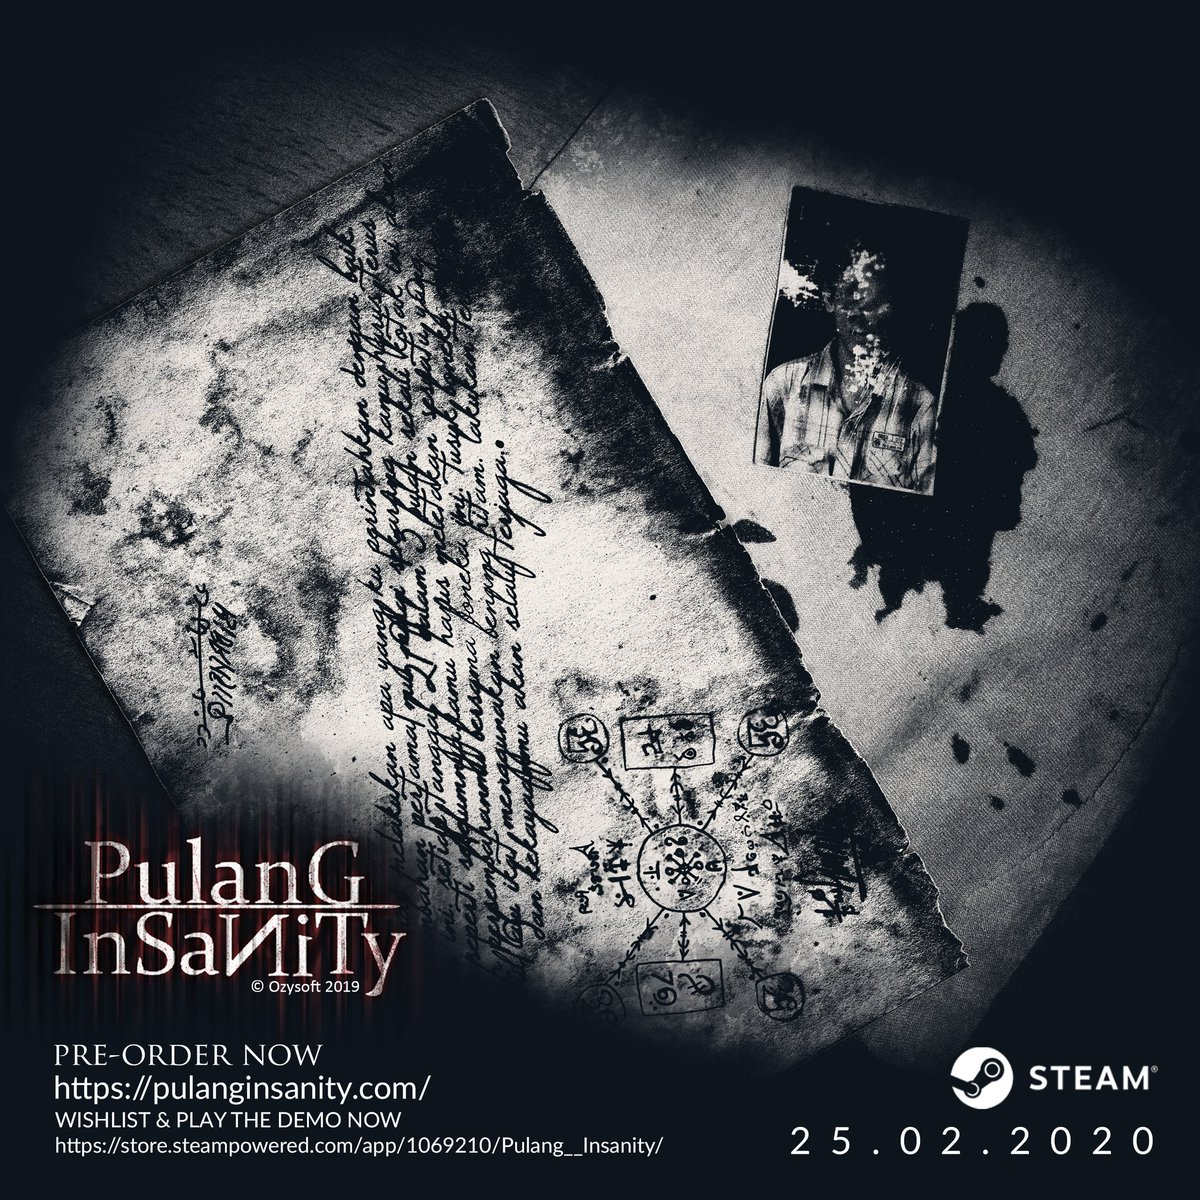 WISHLIST & PLAY THE DEMO NOW https://store.steampowered.com/app/1069210/Pulang__Insanity/ …  Website : http://pulanginsanity.com/   #EnterInsanity #ComingSoon #Games #Steam #Indonesia #horror #SurvivalHorror #PsychologicalHorror #pulanginsanity #NewDemoUpdatepic.twitter.com/ueTExi095W